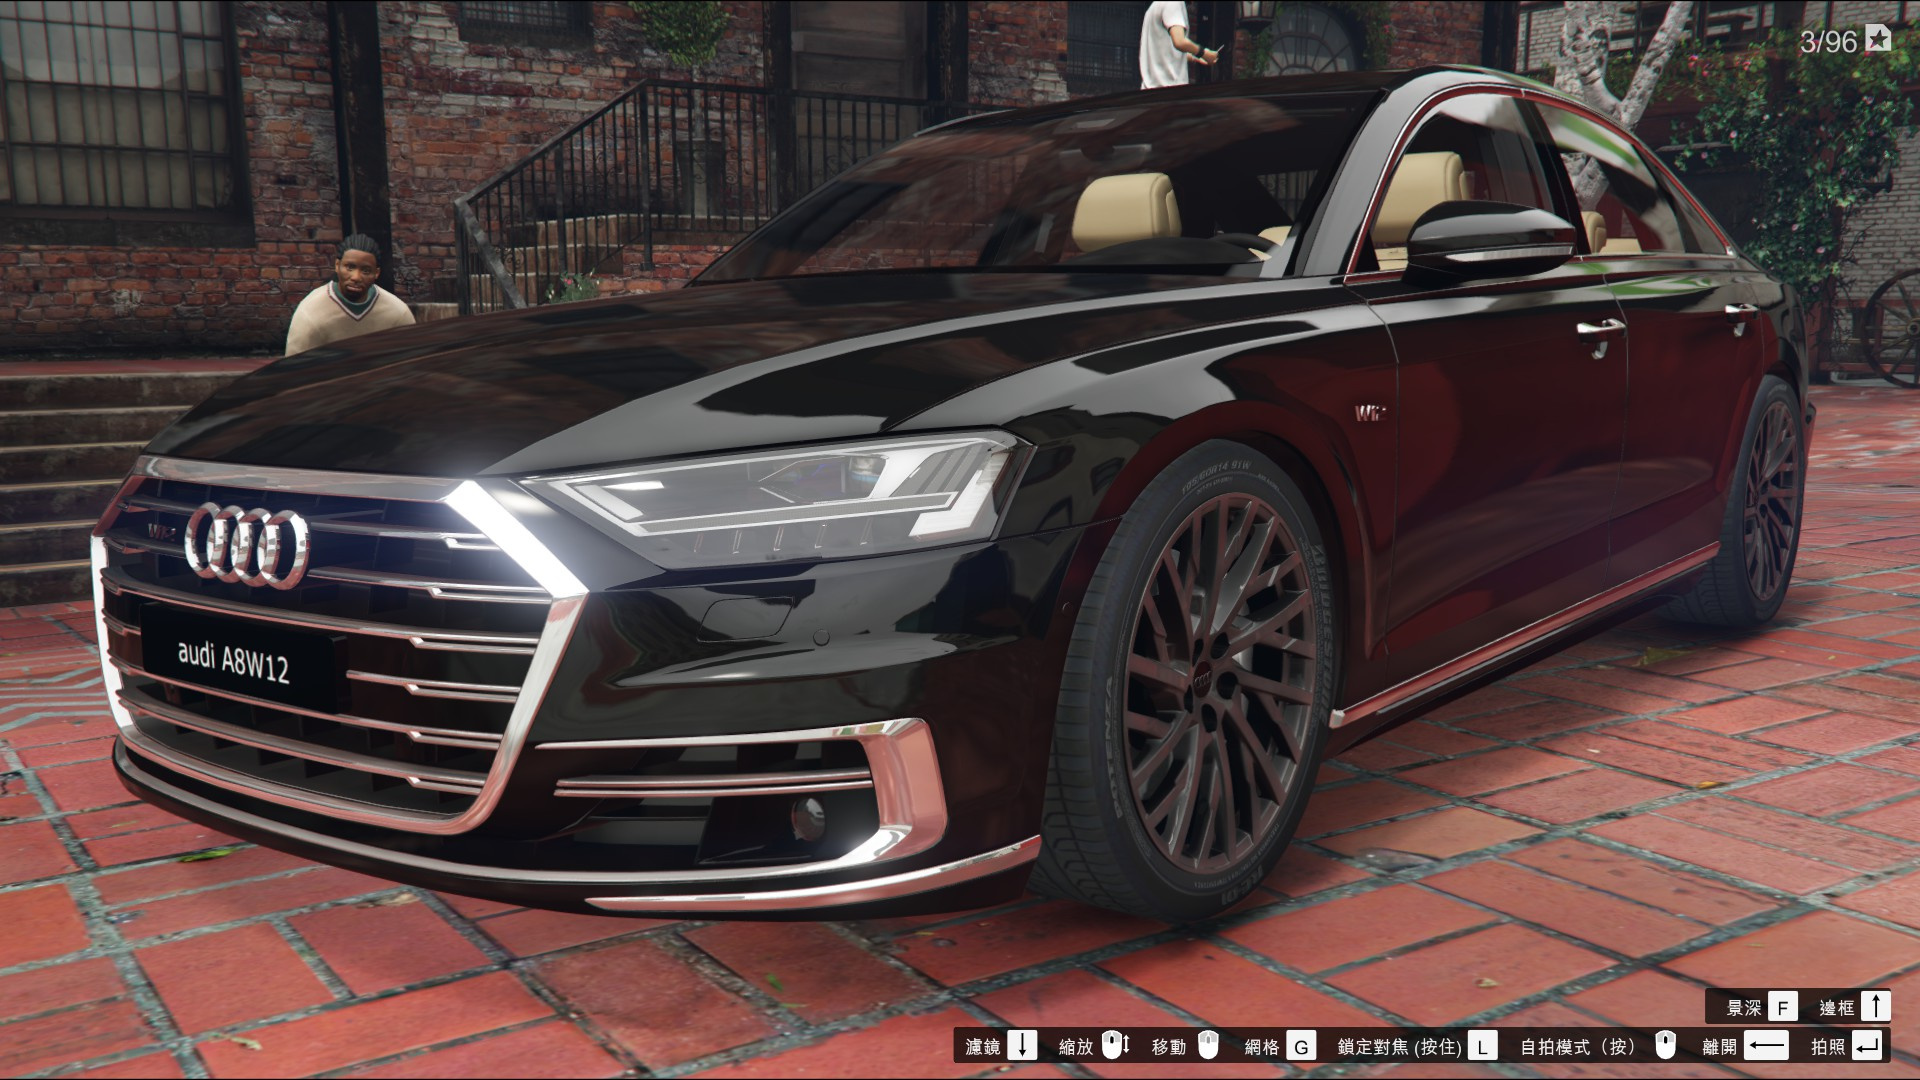 2018 audi a8 w12 d5 add on gta5. Black Bedroom Furniture Sets. Home Design Ideas